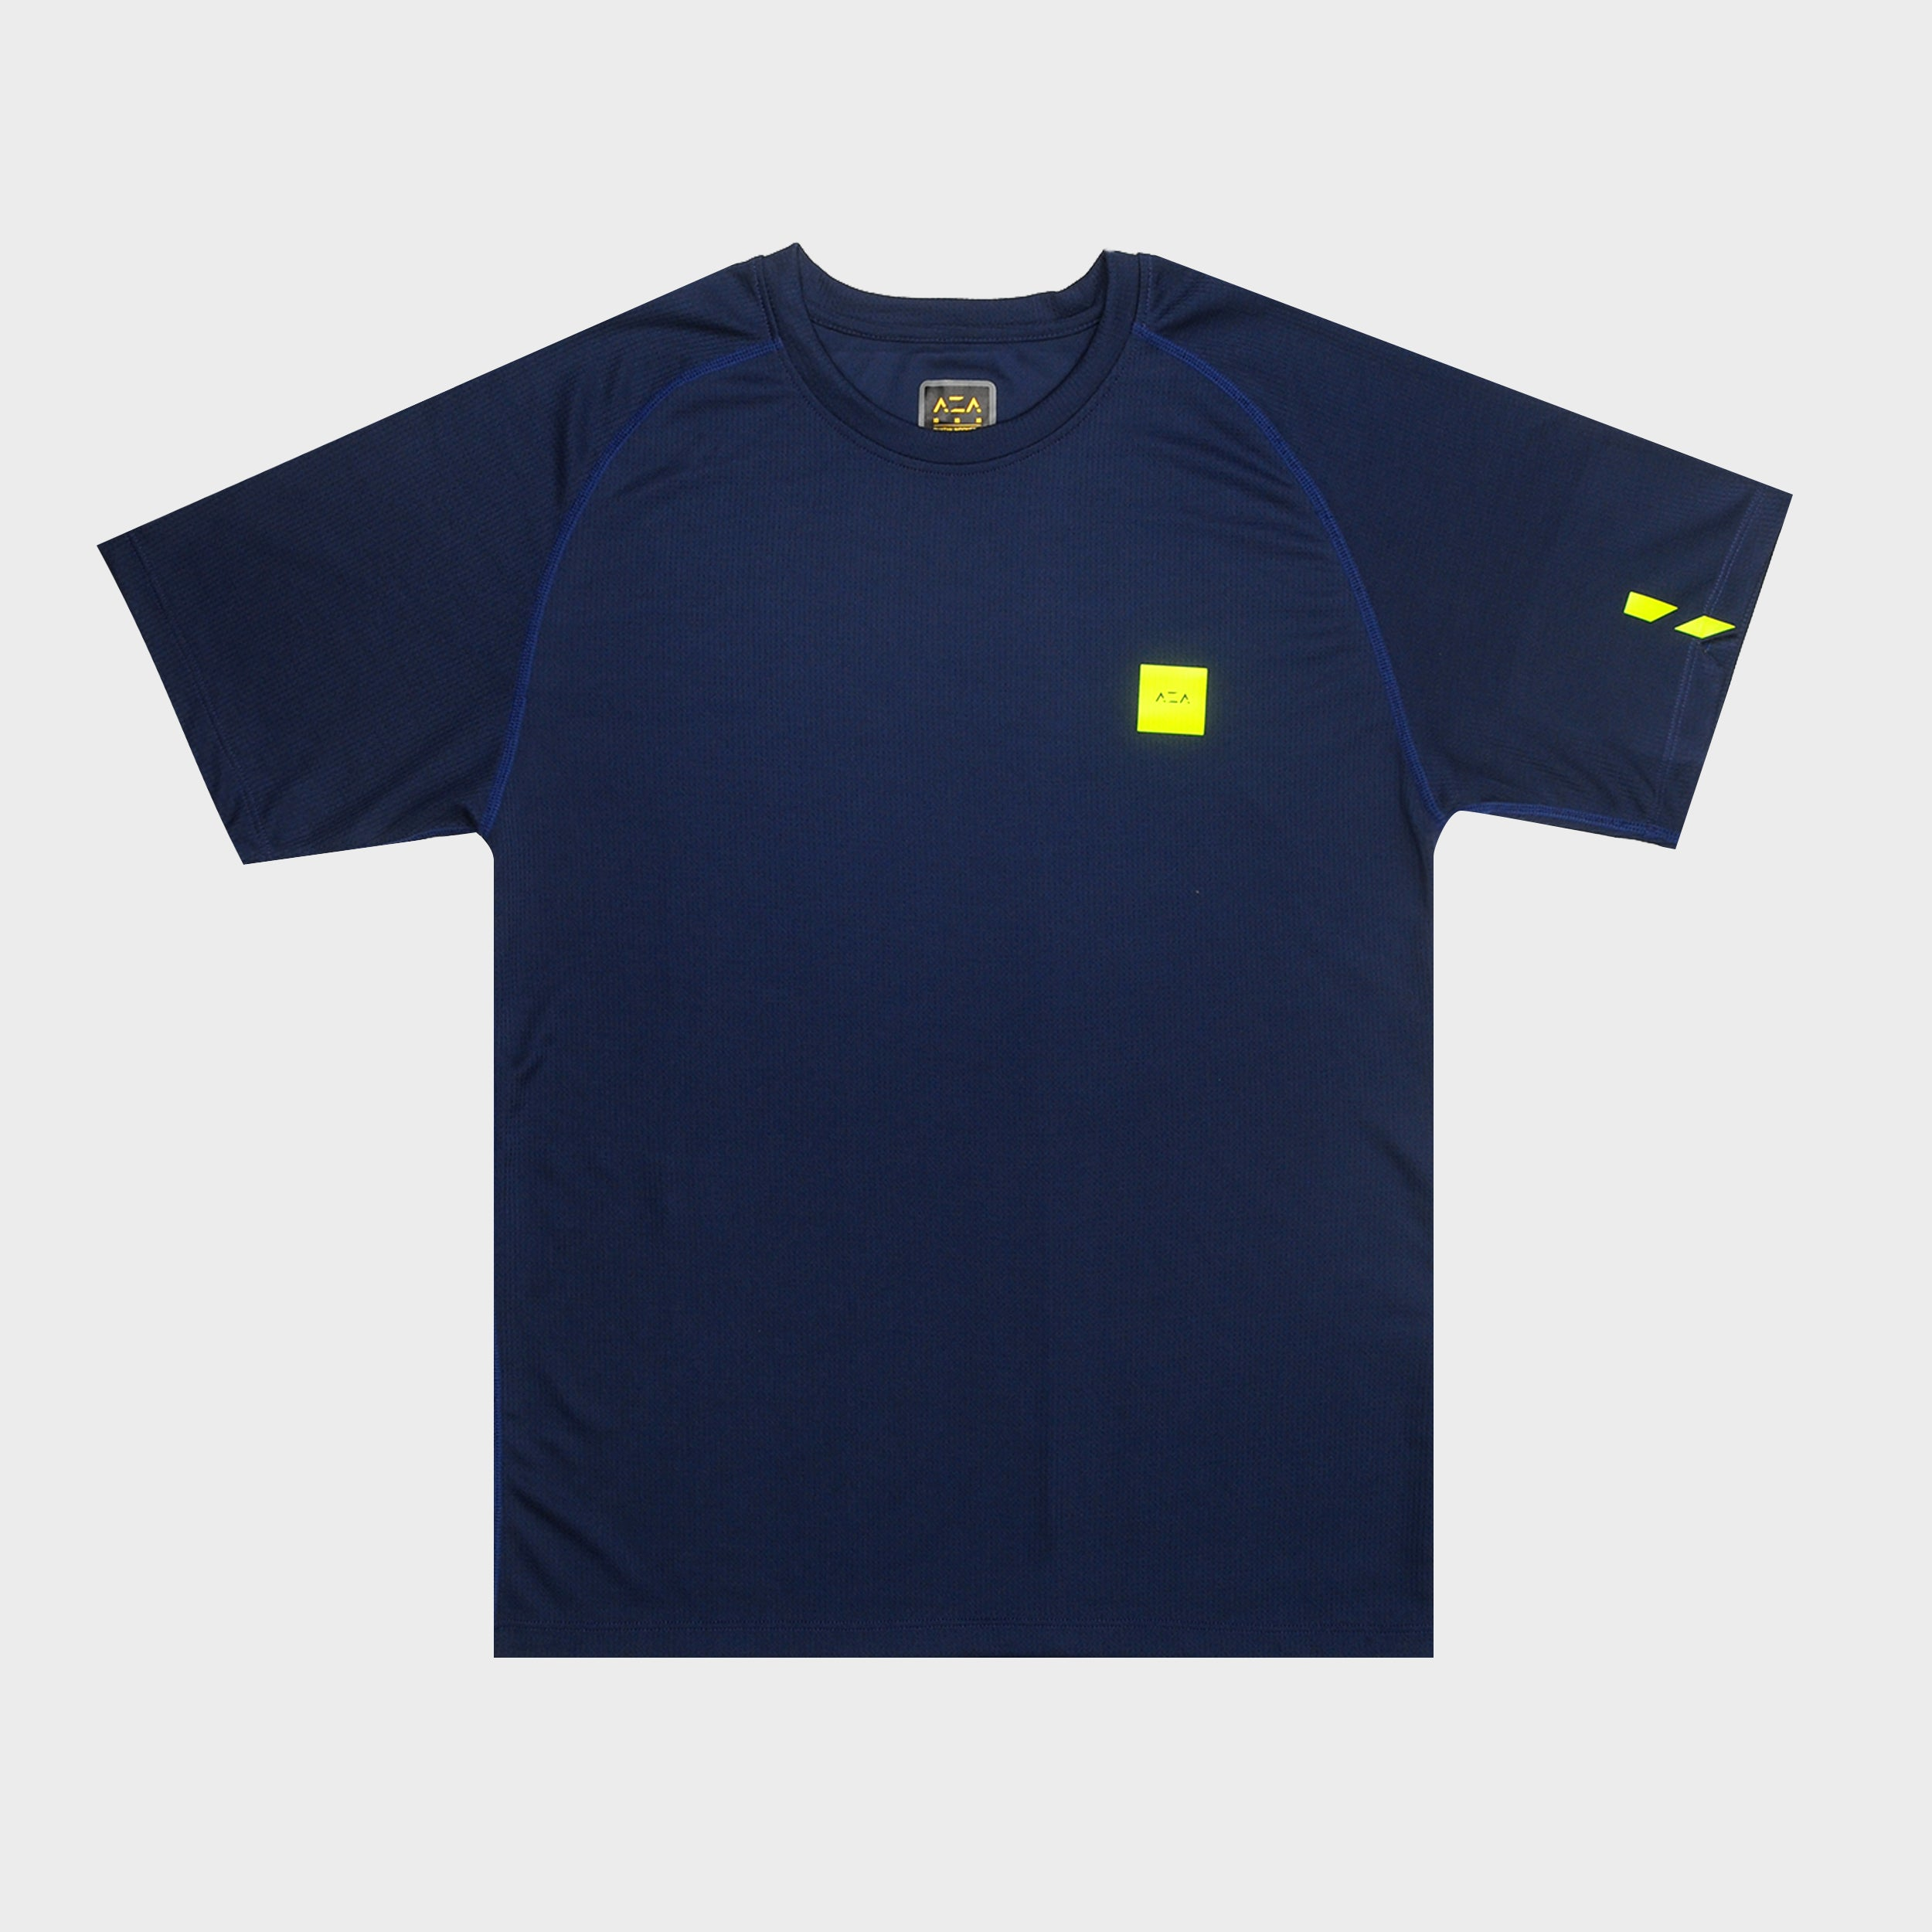 AZA Performance T-Shirt - Navy